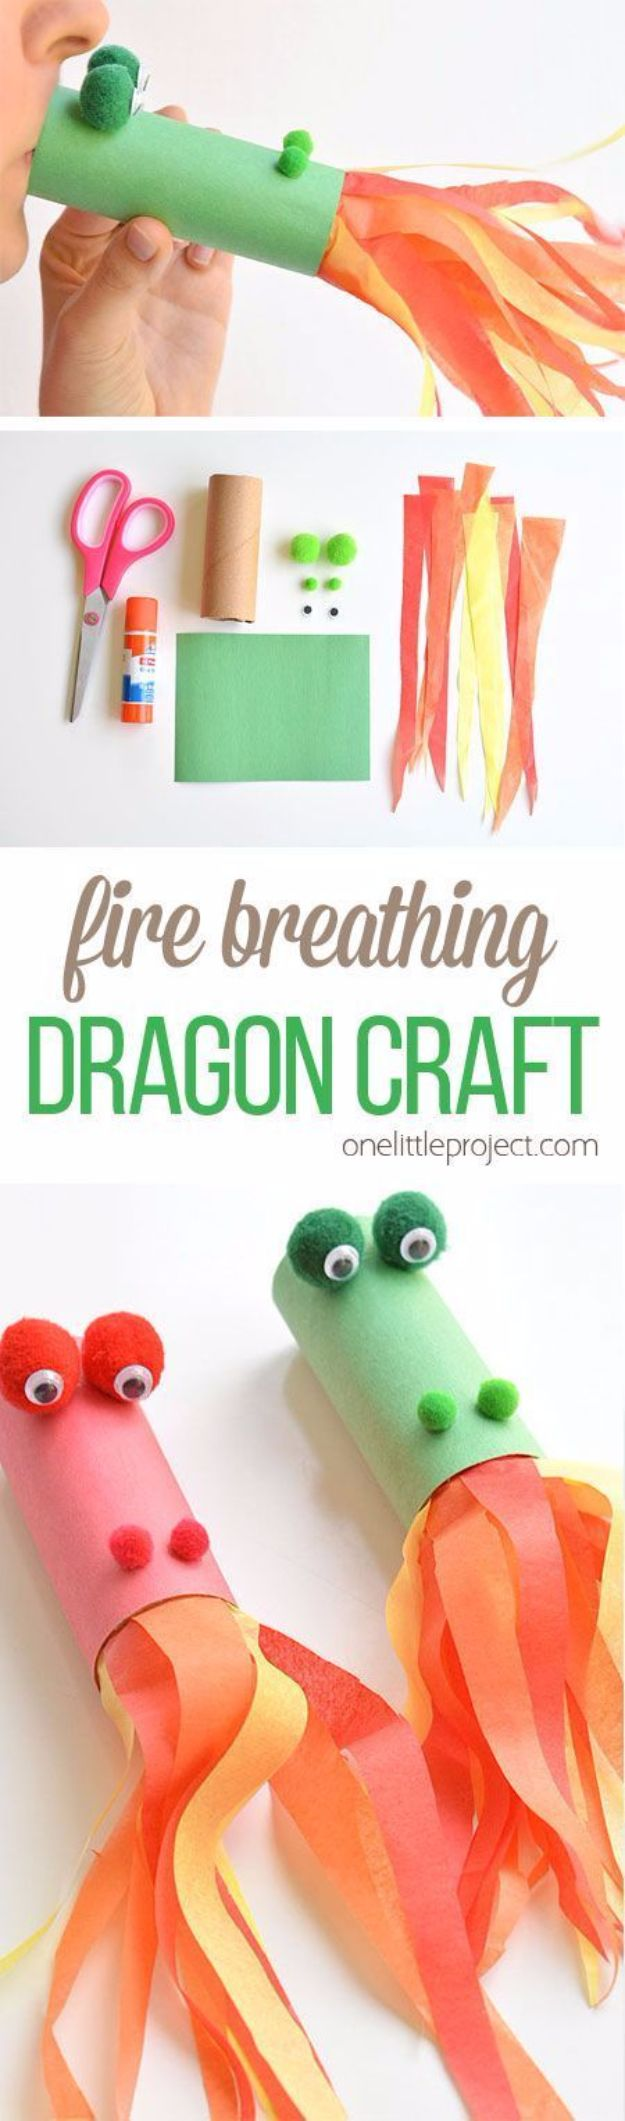 DIY Ideas for Kids To Make This Summer - Paper Roll Fire Breathing Dragon - Fun Crafts and Cool Projects for Boys and Girls To Make at Home - Easy and Cheap Do It Yourself Project Ideas With Paint, Glue, Paper, Glitter, Chalk and Things You Can Find Around The House - Creative Arts and Crafts Ideas for Children #summer #kidscrafts